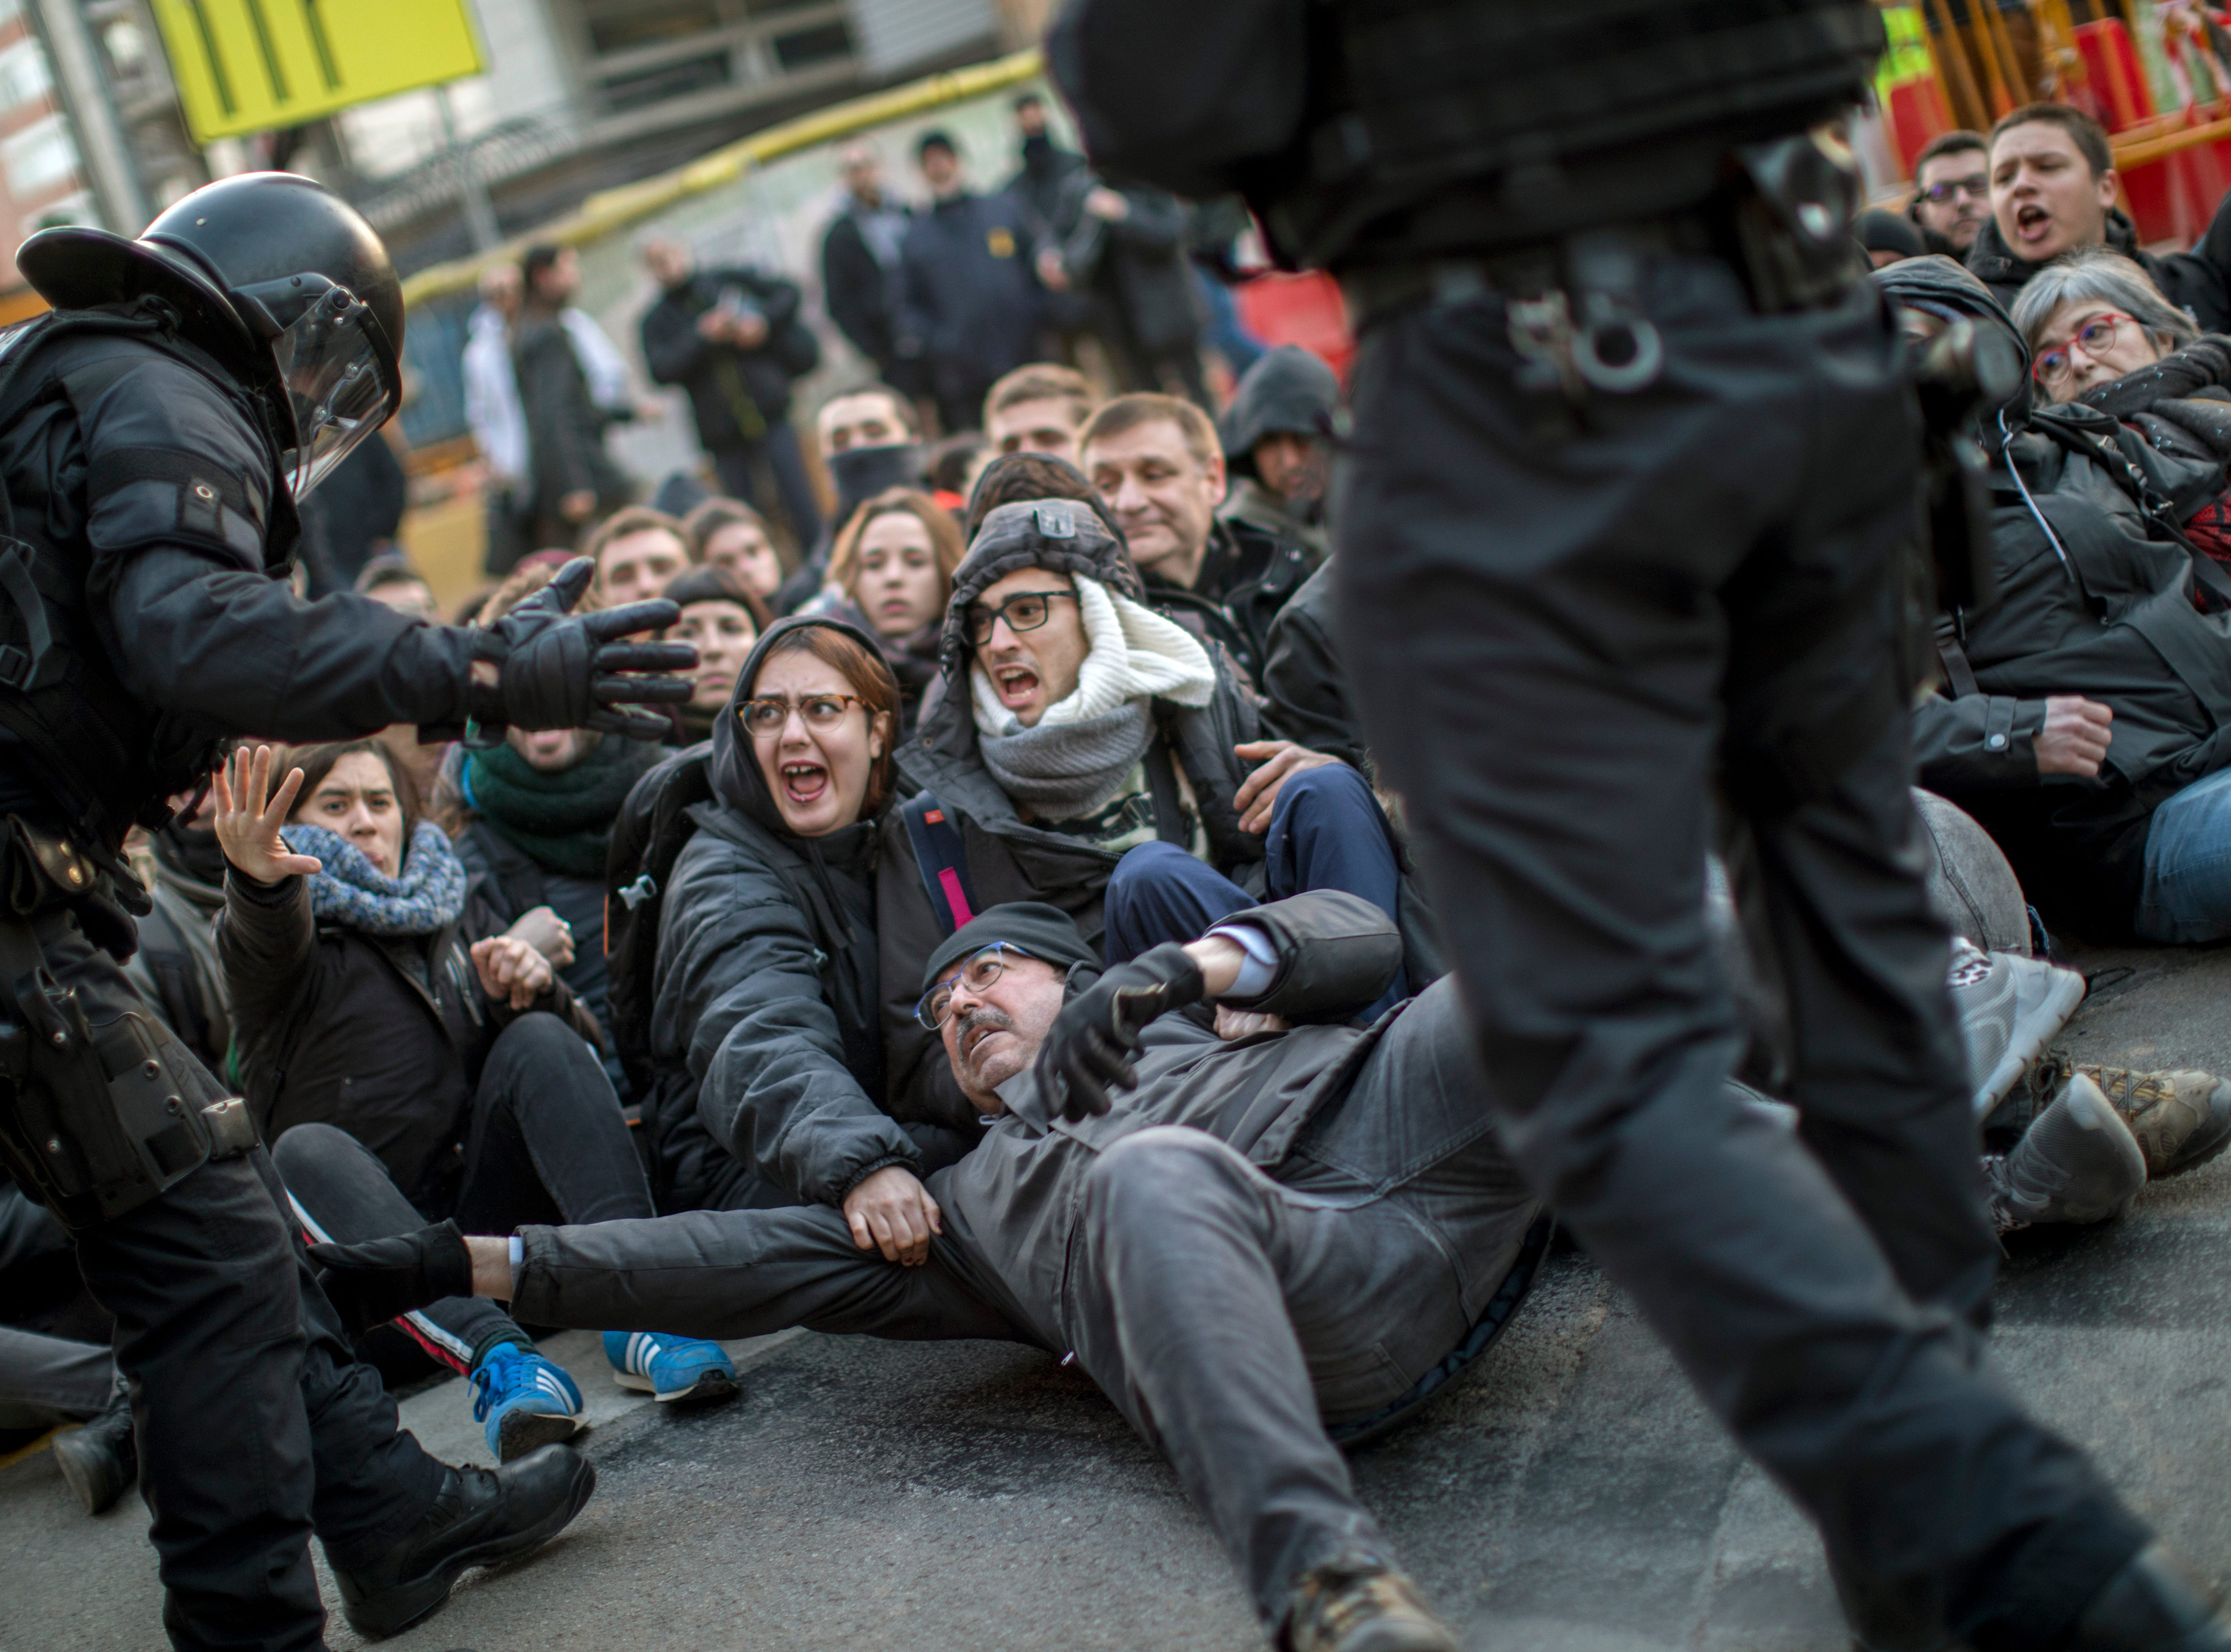 Police officers remove demonstrators blocking a road leading to Barcelona city during a general strike in Catalonia, Spain, Thursday, Feb. 21, 2019. Strikers advocating for Catalonia's secession from Spain are blocking major highways, train lines and roads across the northeastern region.